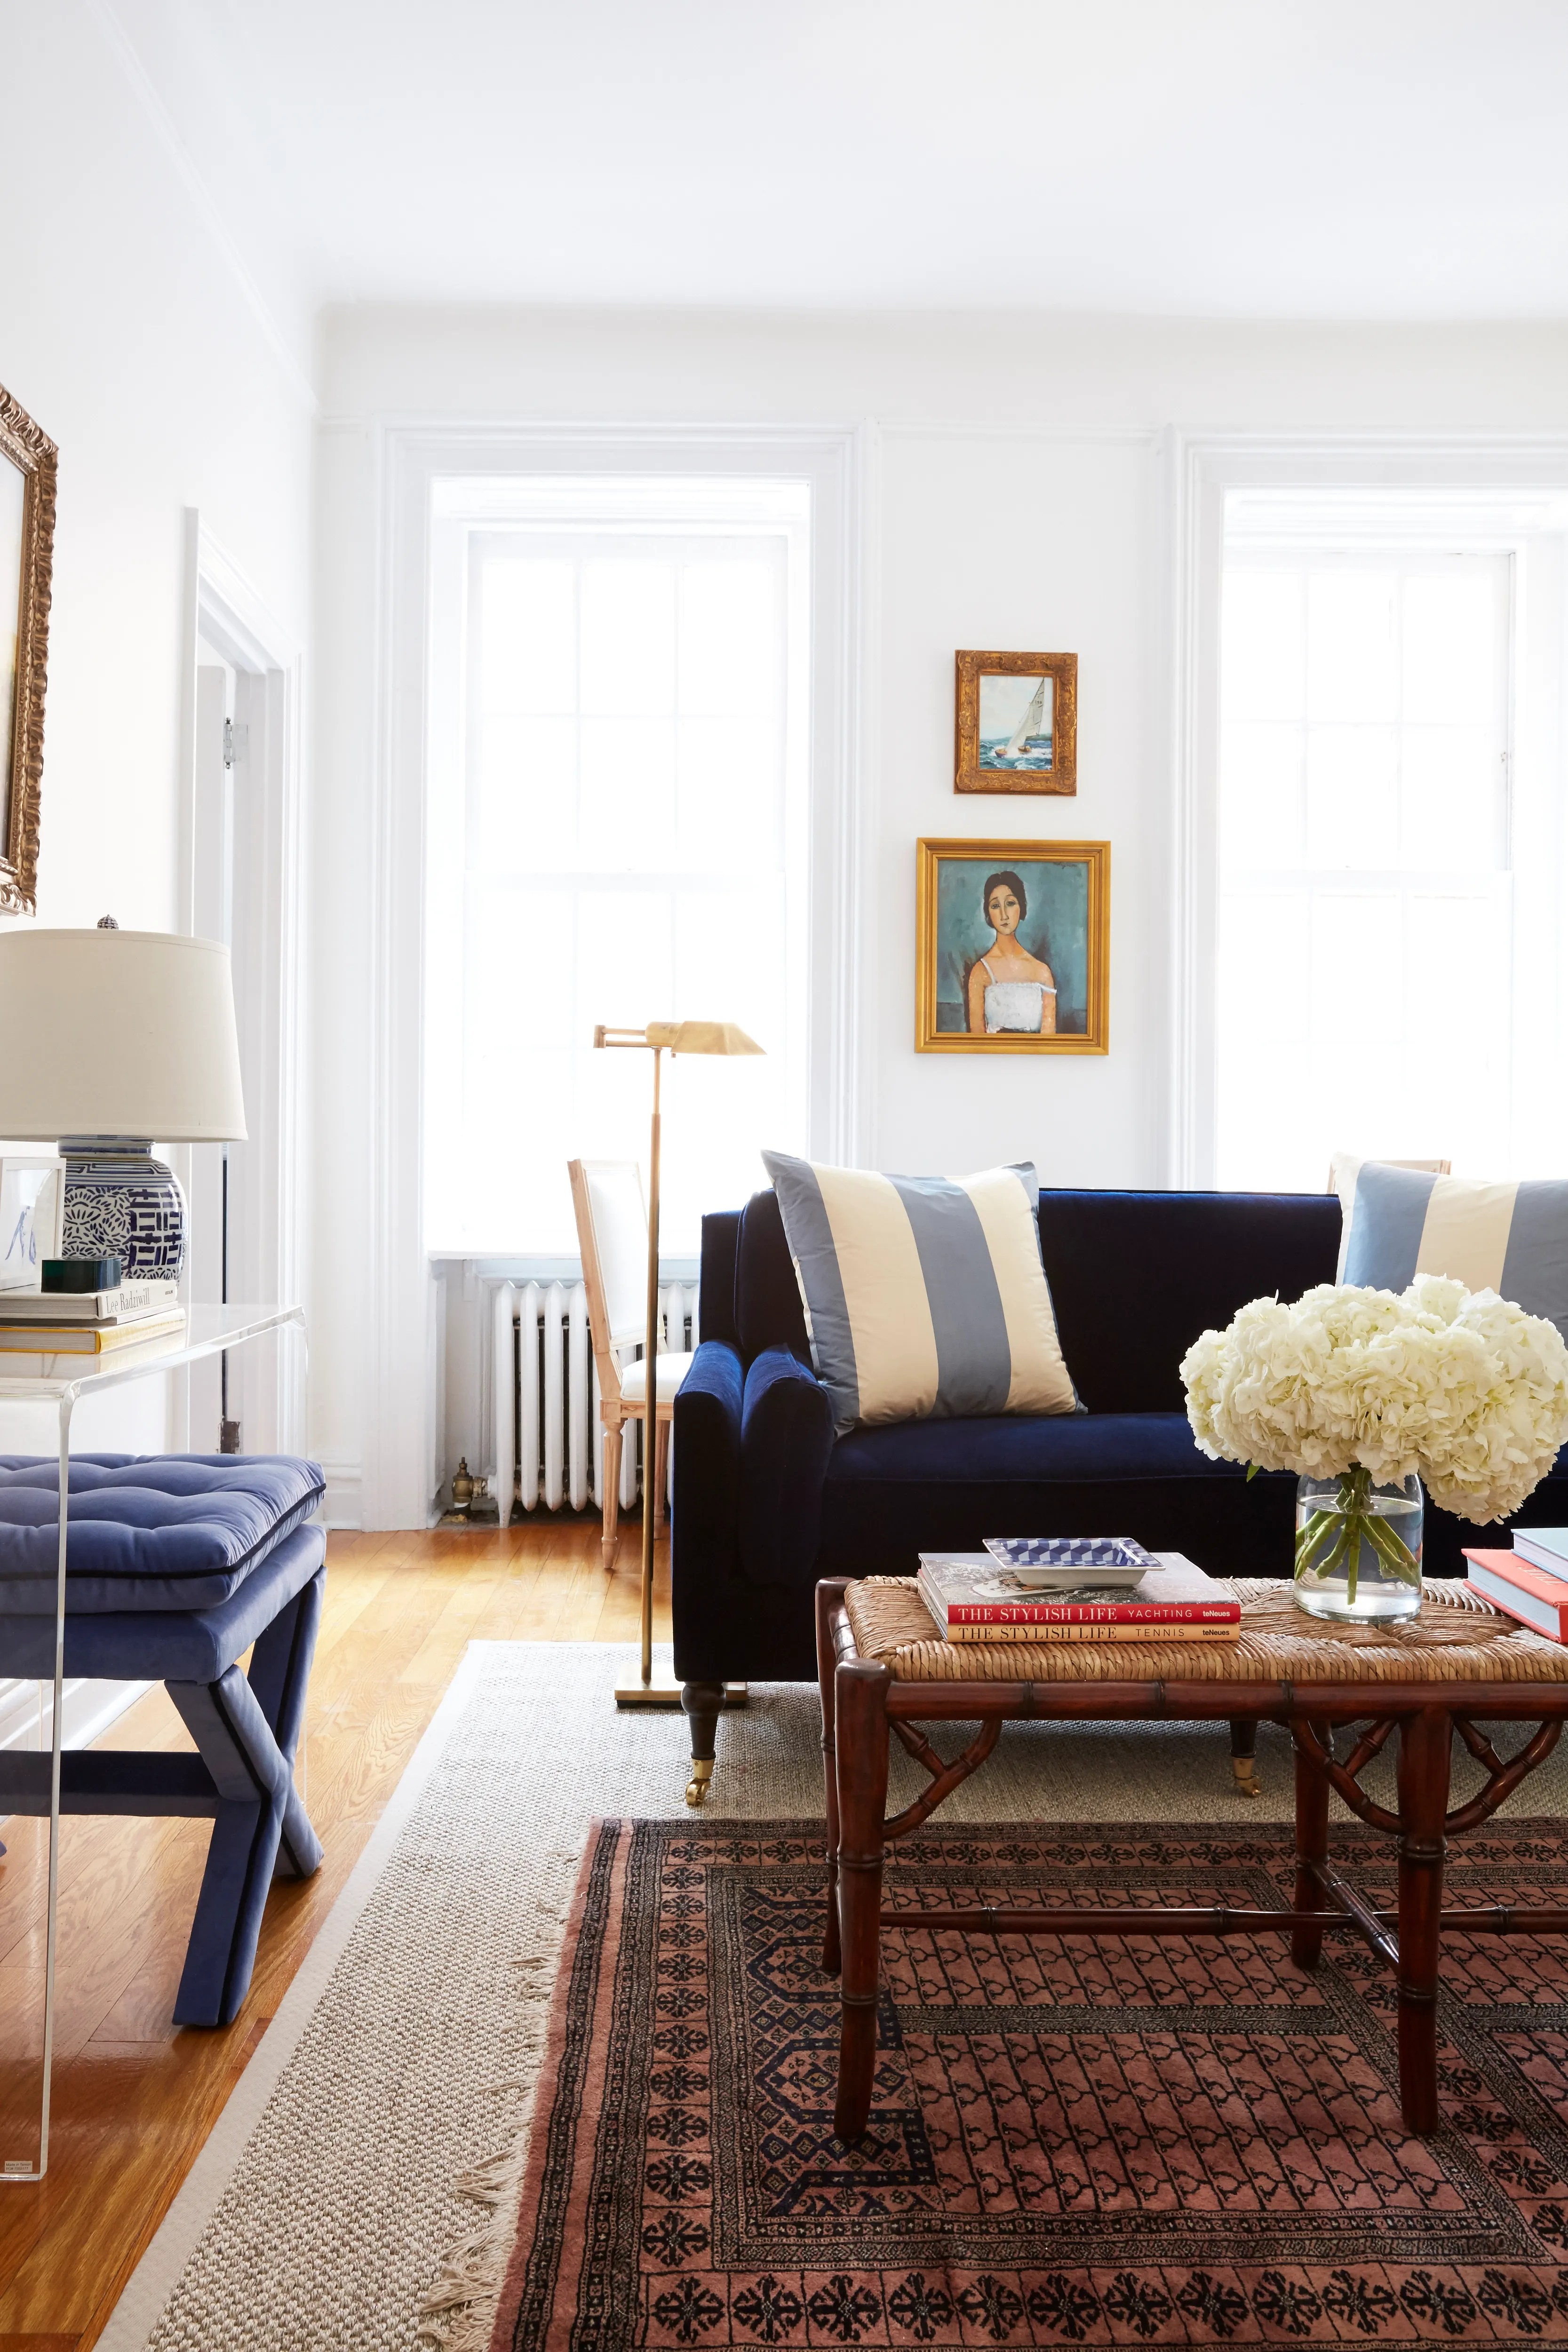 8 Small Living Room Ideas That Will Maximize Your Space ... on Small Living Room Decorating Ideas  id=12349